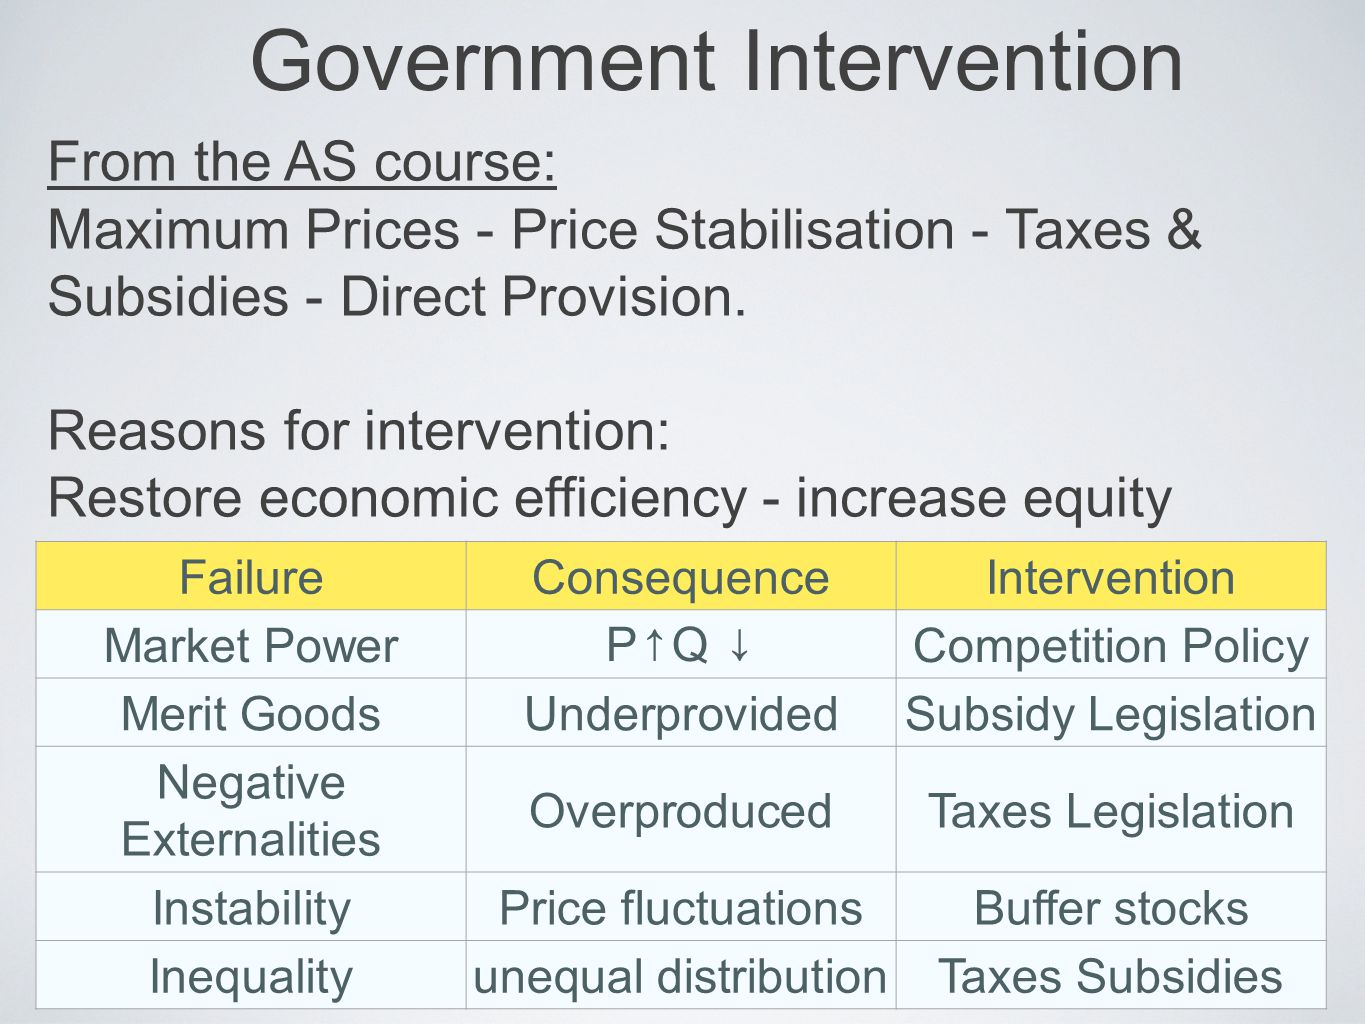 Government Intervention From the AS course: Maximum Prices - Price Stabilisation - Taxes & Subsidies - Direct Provision. Reasons for intervention: Res